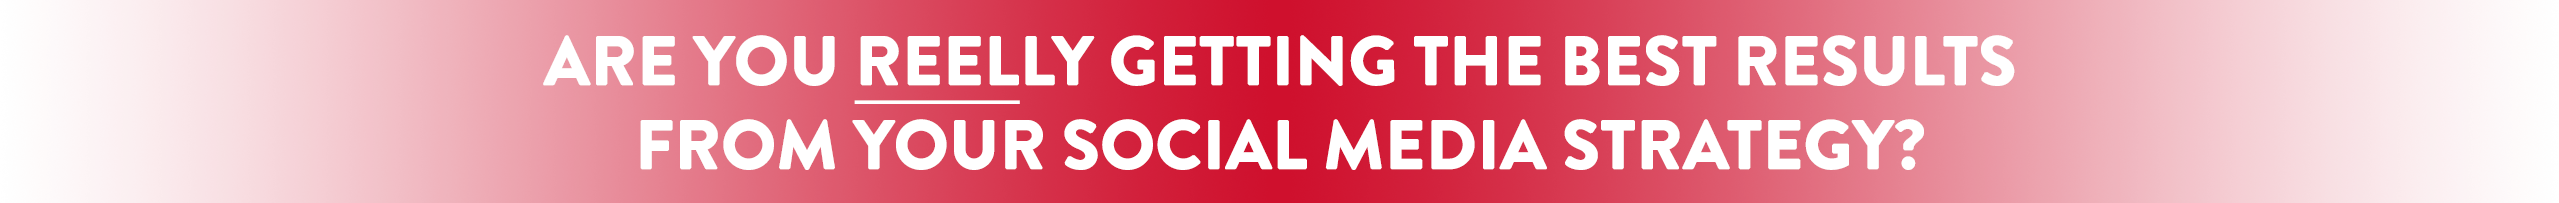 Are You Reelly Getting The Best Results From Your Social Media Strategy?